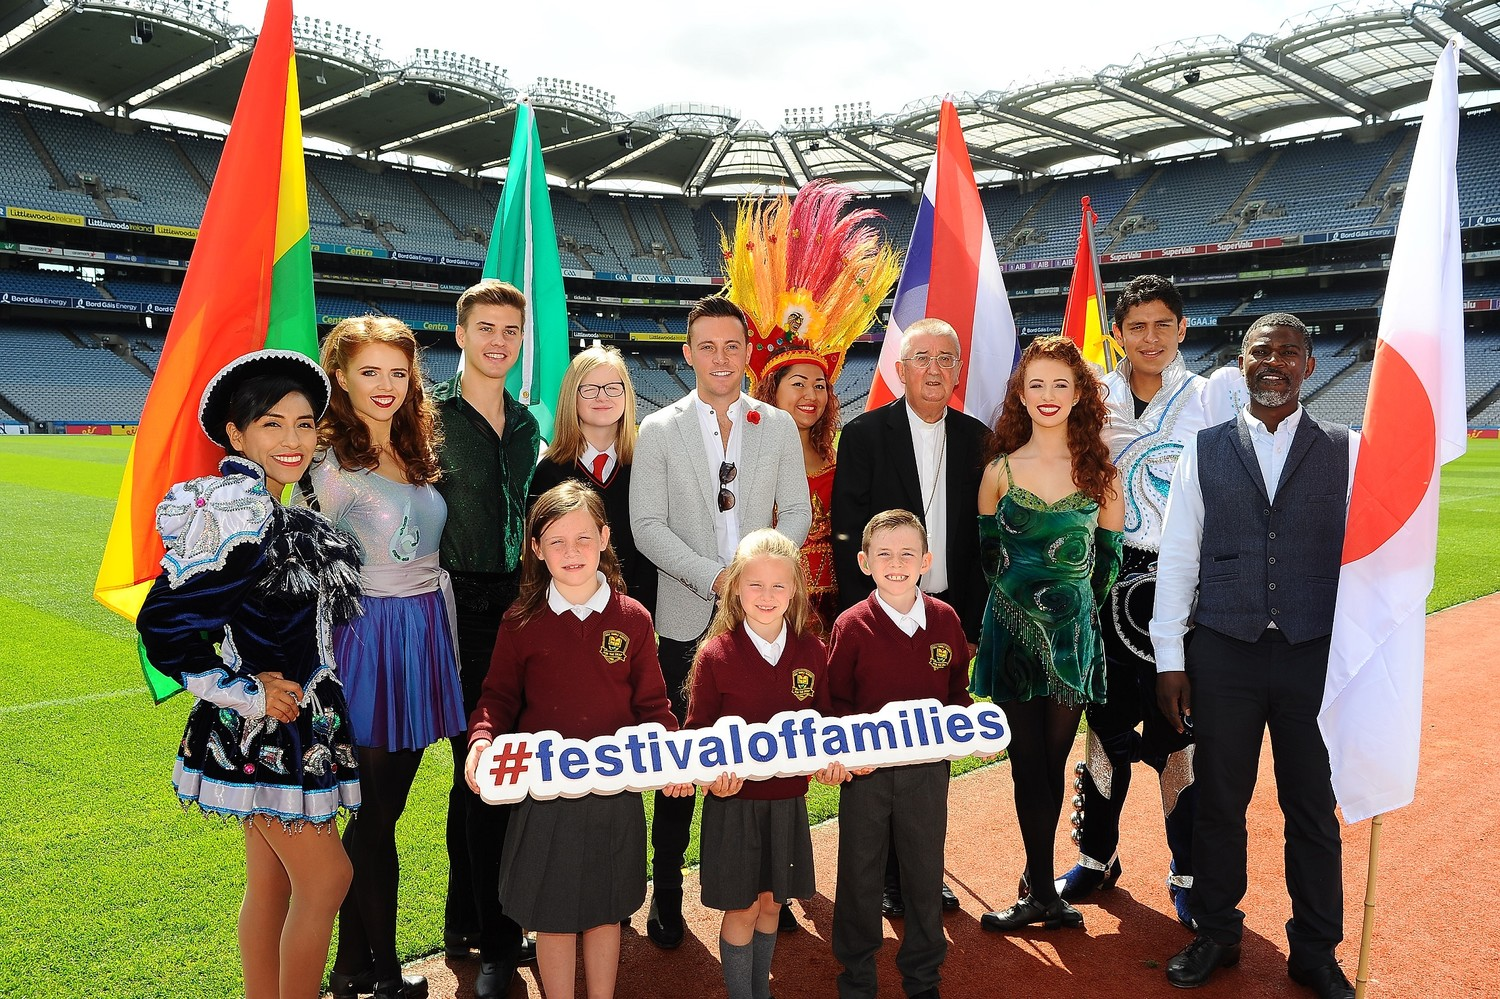 People pose July 19 during the launch of the World Meeting of Families in Dublin's Croke Park. Pope Francis will travel to Ireland Aug. 25-26 for the end of the gathering.